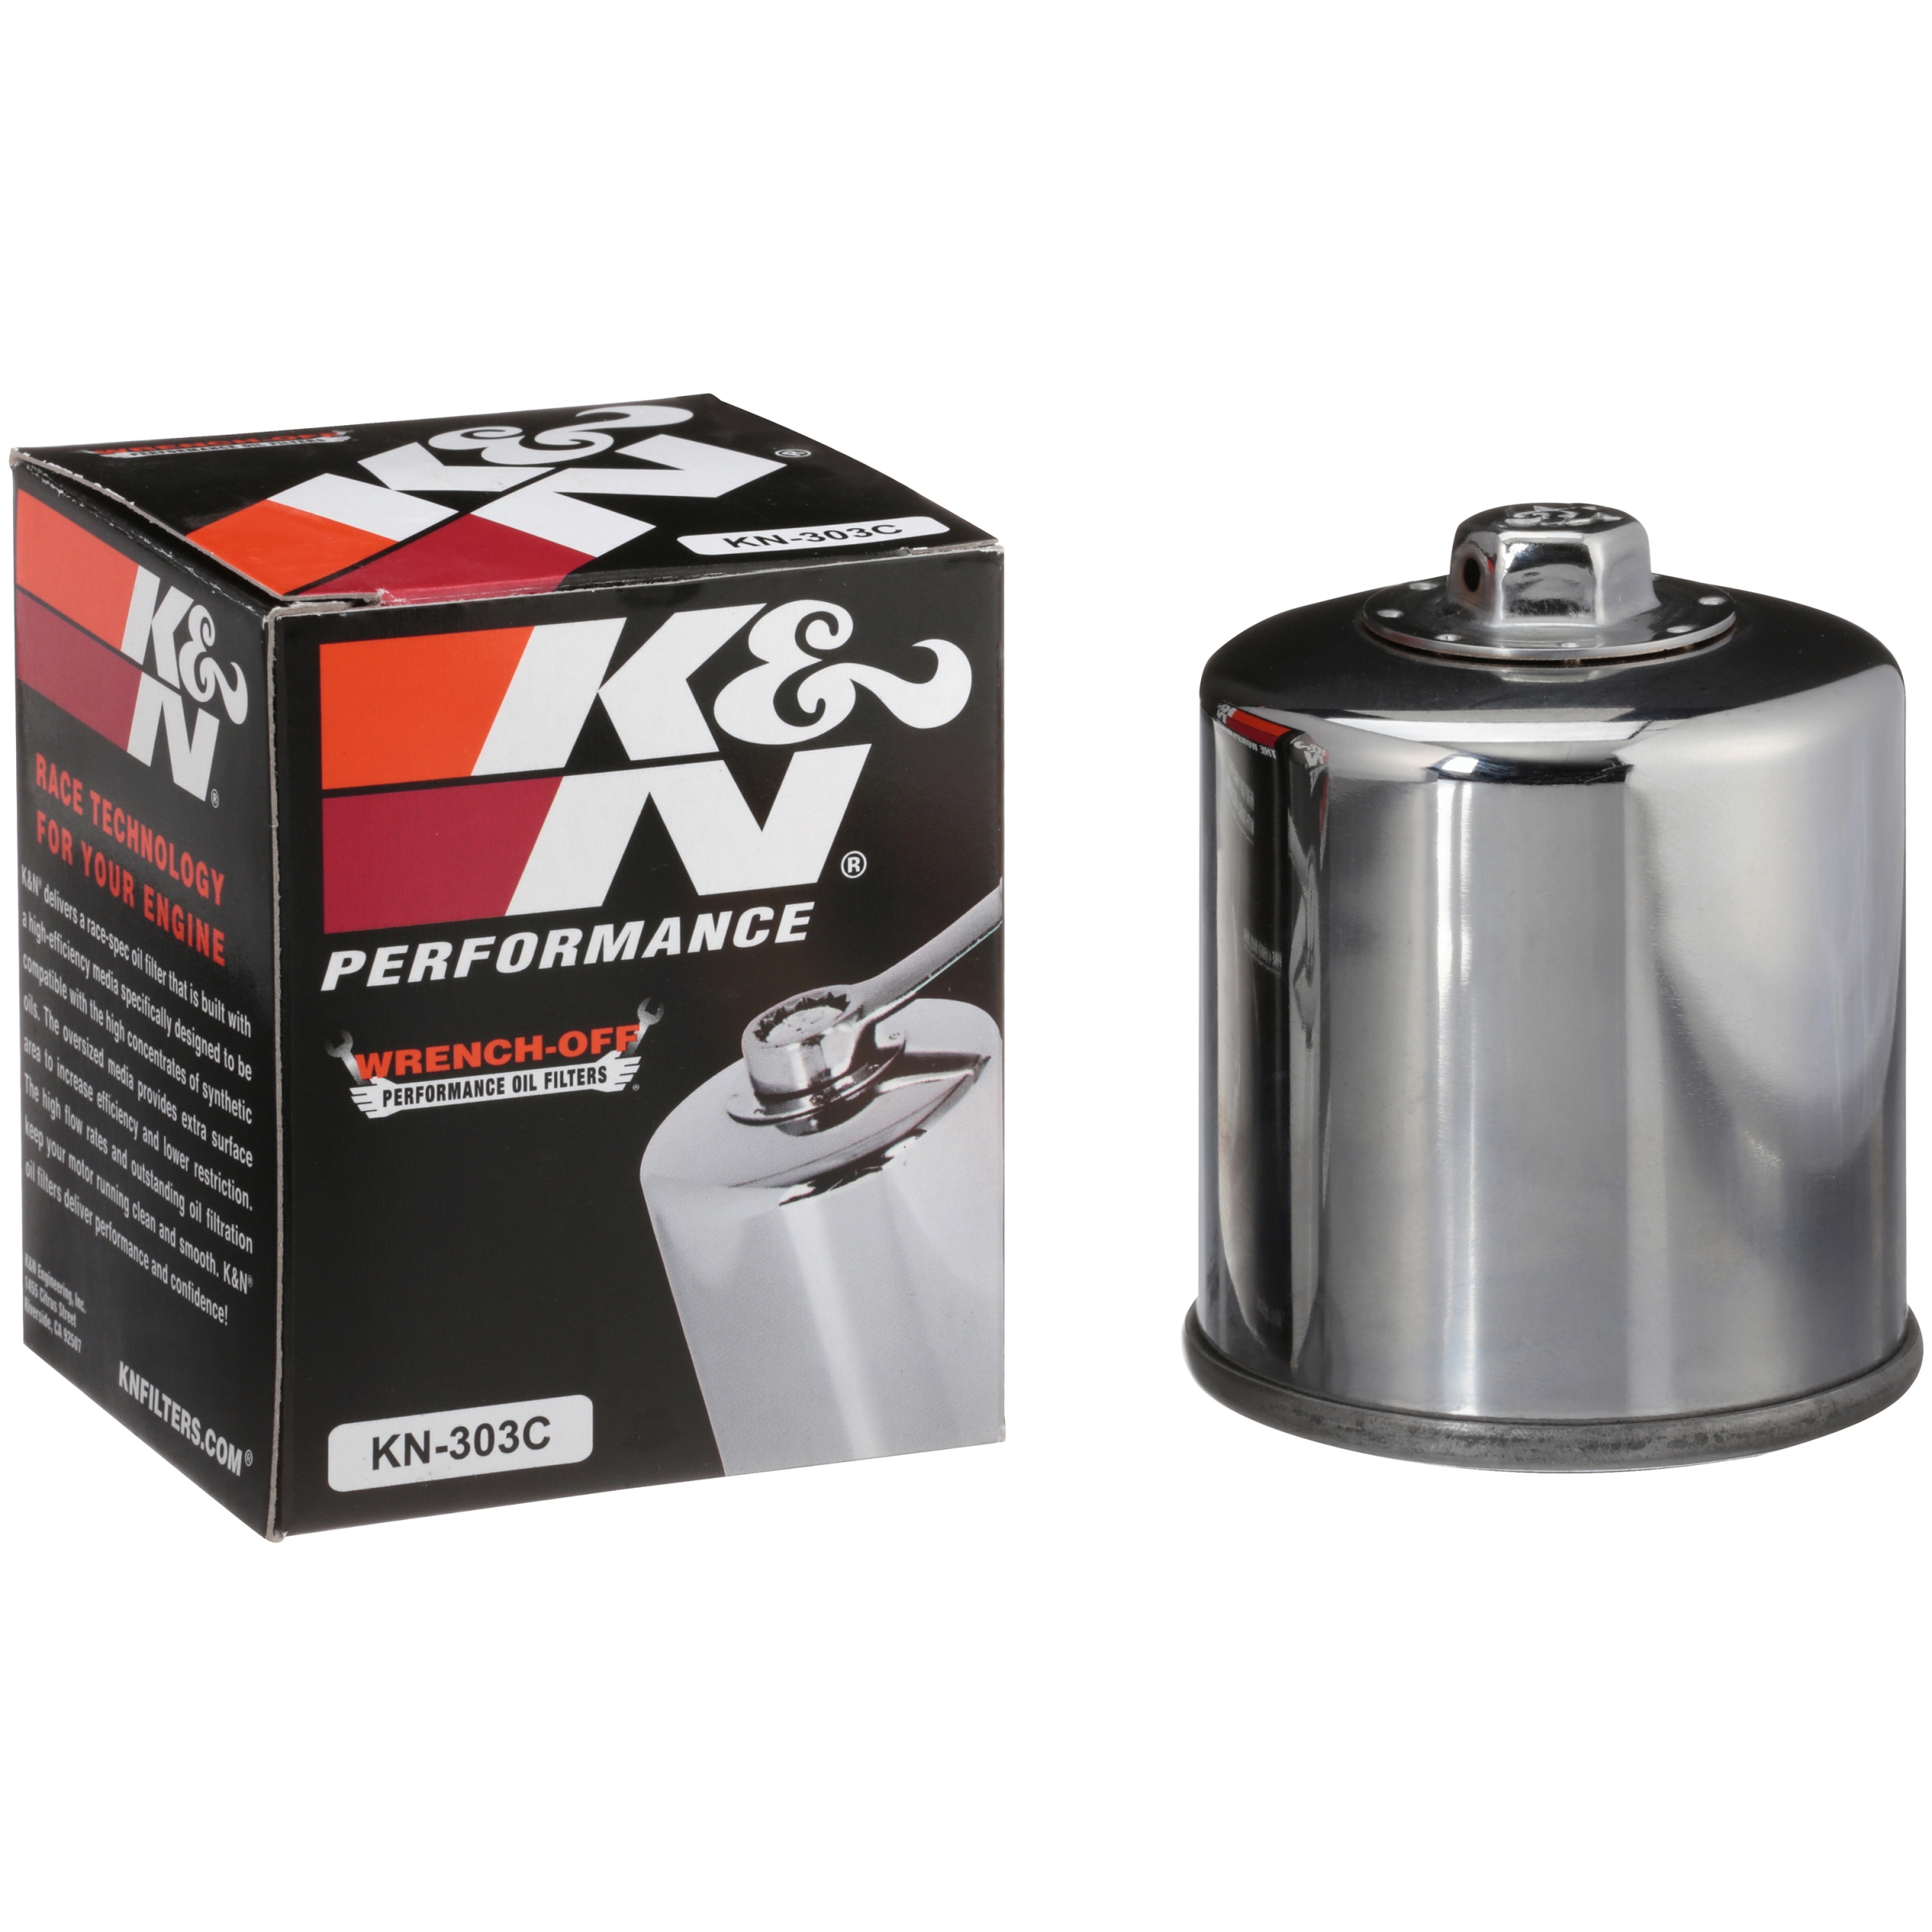 K&N® Performance Oil Filter